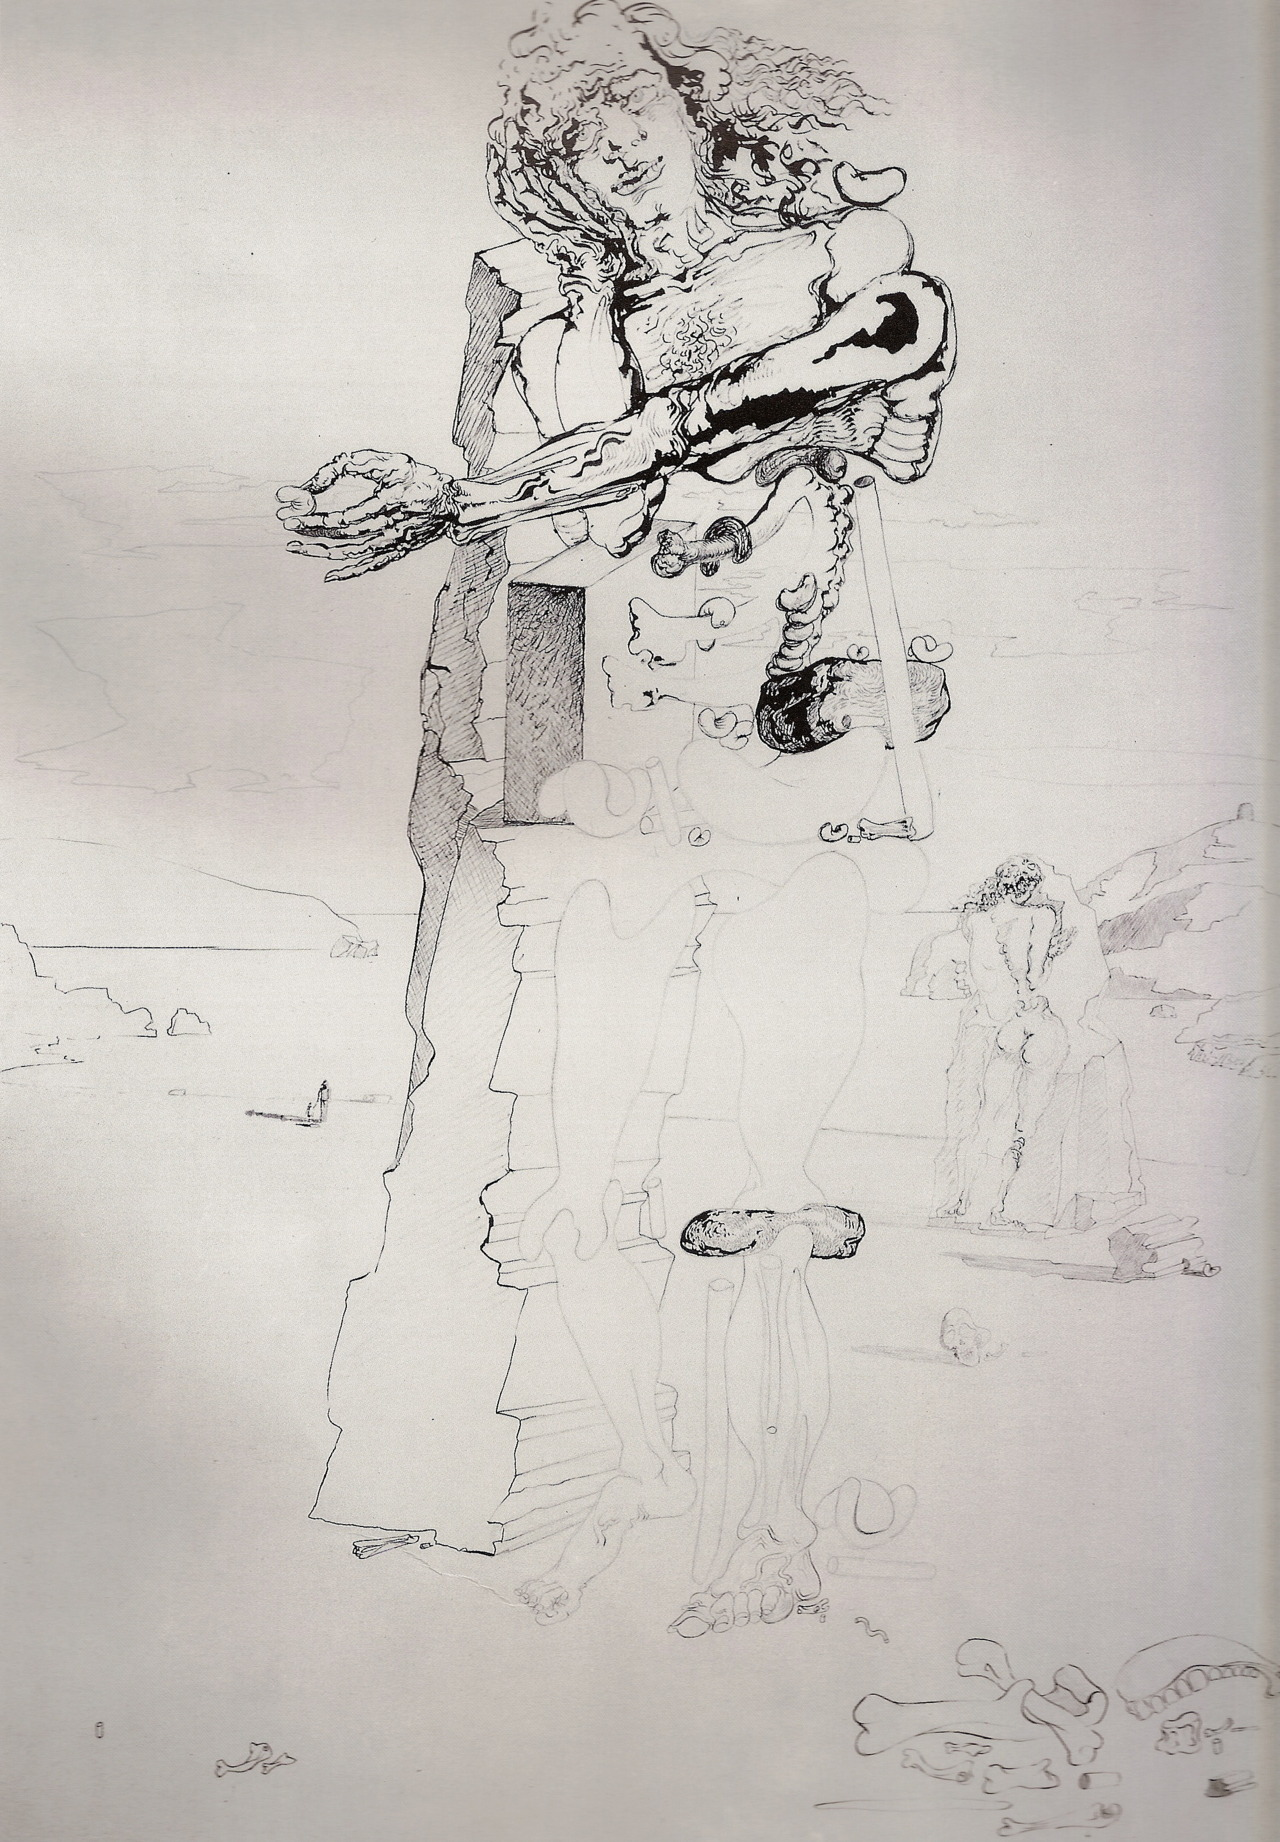 arte-de-ayer:  S. Dalí, Surrealist Figure in Landscape of Port Lligat, ink; 1933